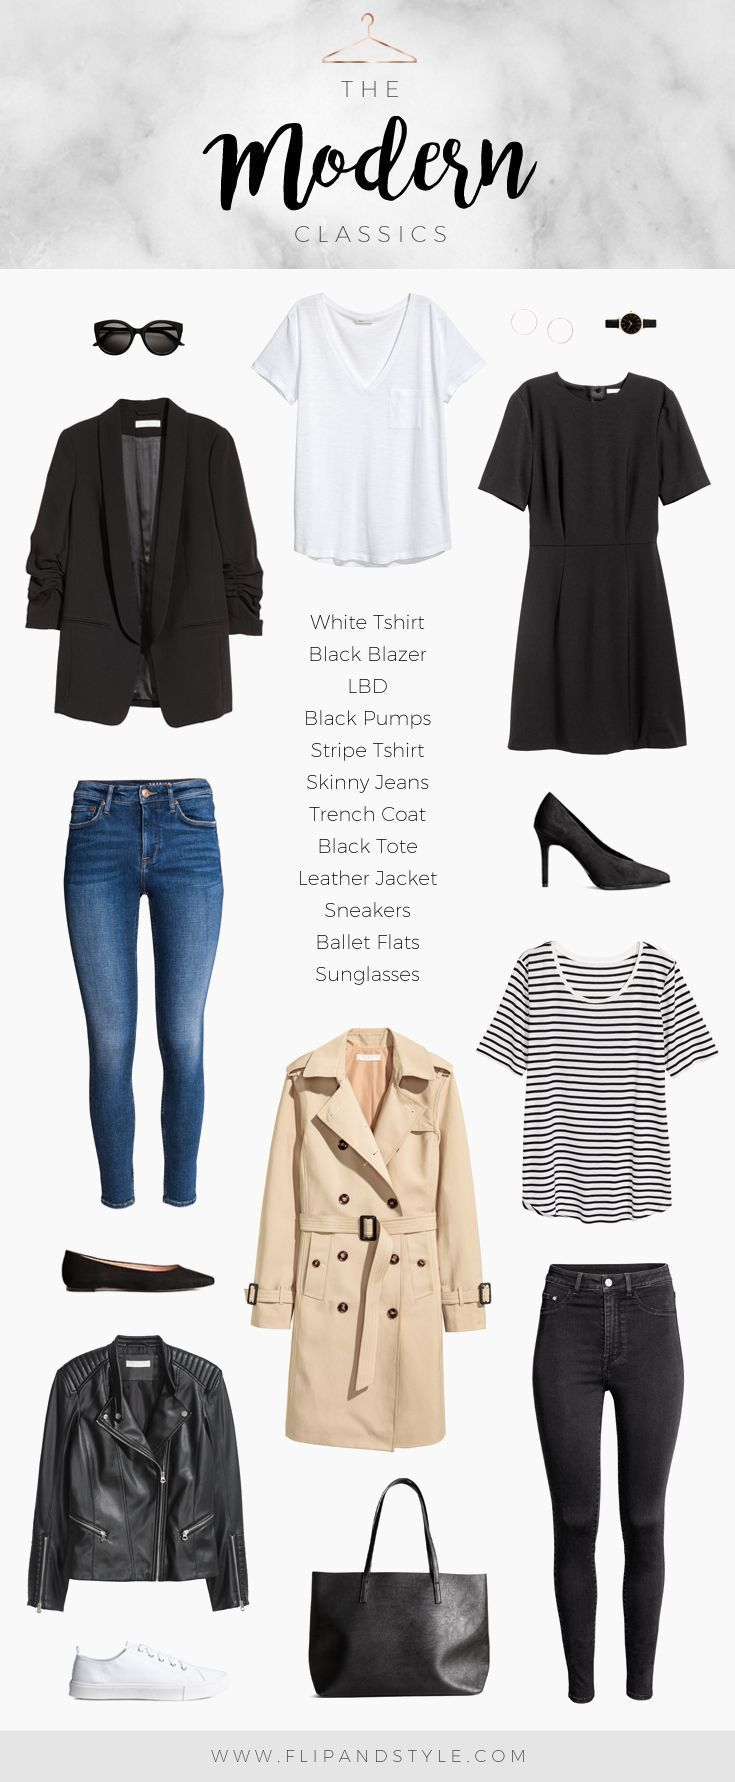 7877 Best Plus Size Fashion And Accessories Images On Pinterest Capsule Wardrobe Travel